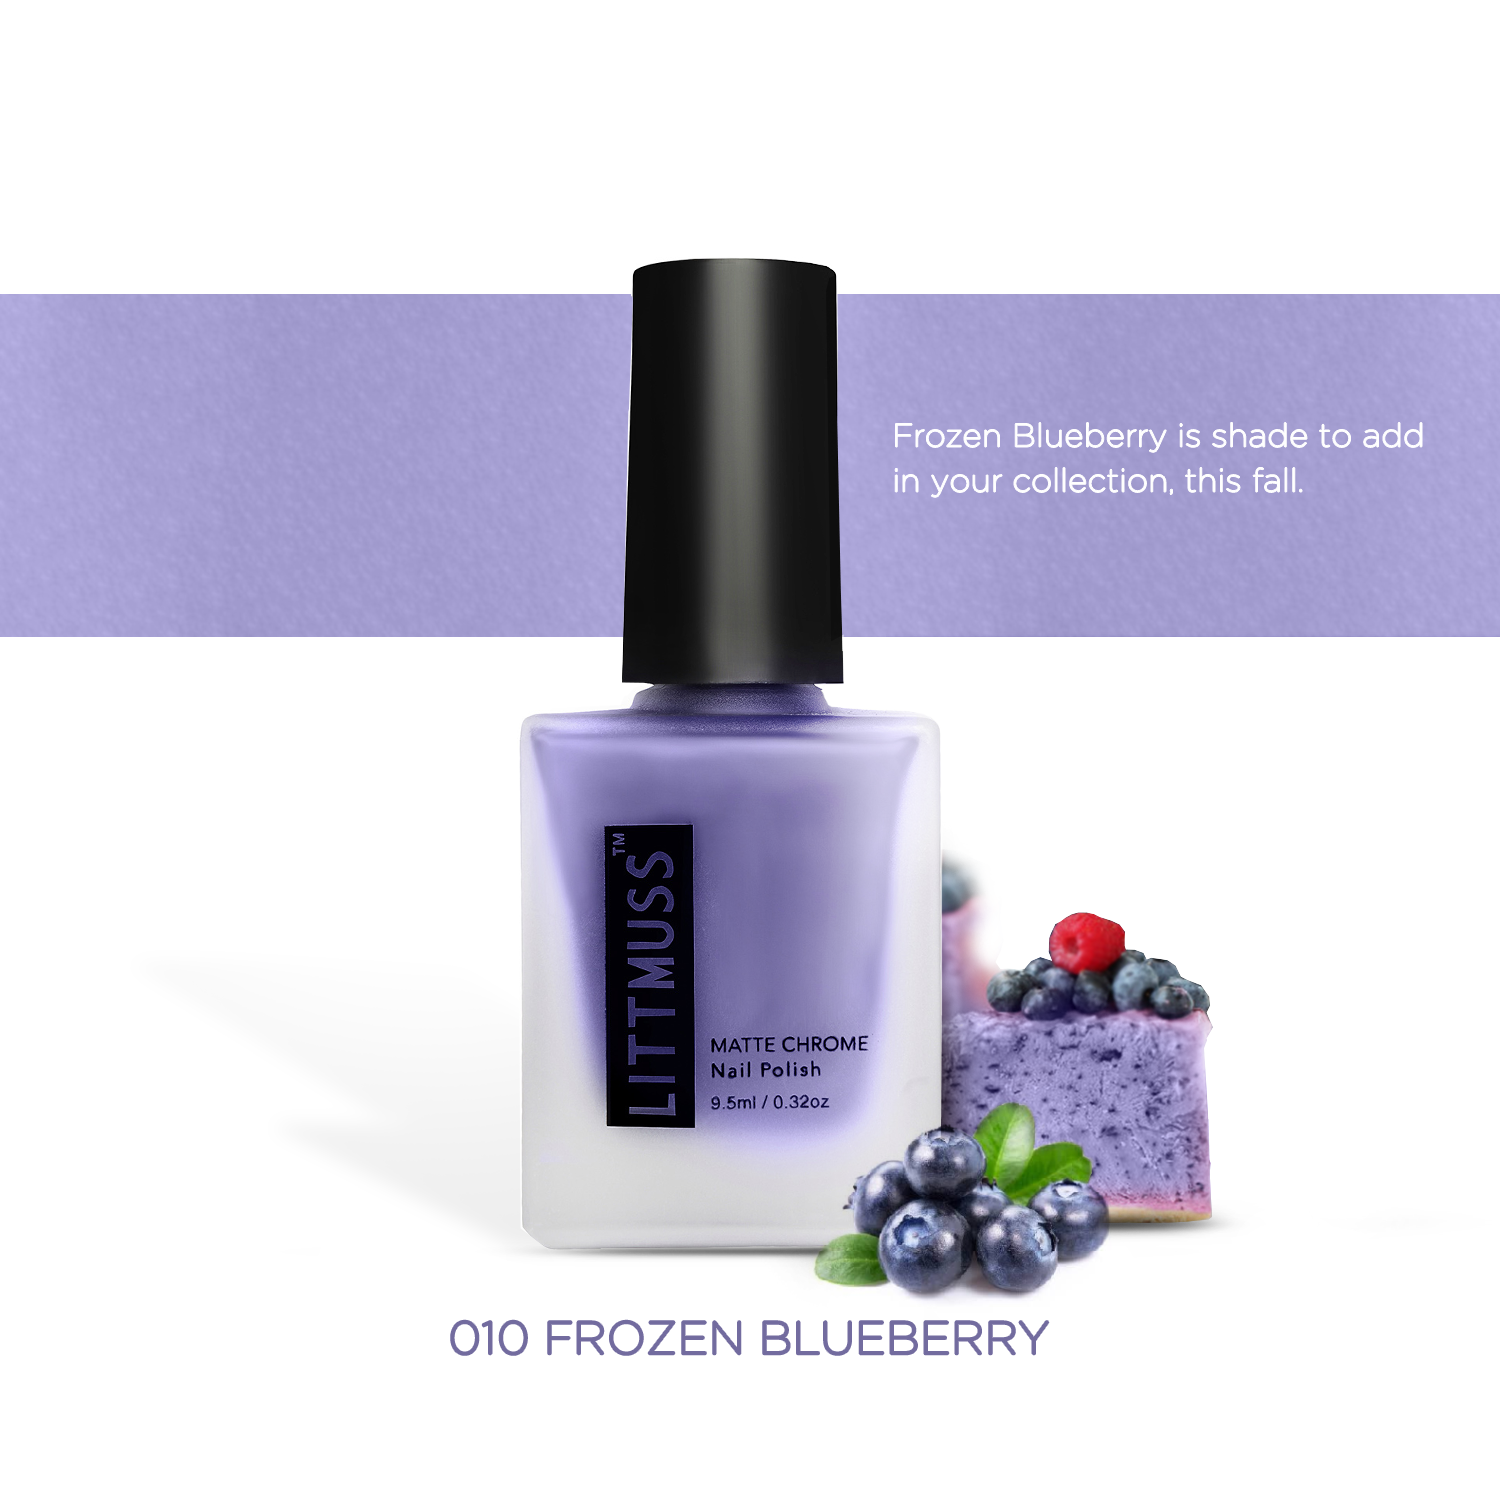 LITTMUSS Matte Chrome Nail Polish Frozen Blueberry -010